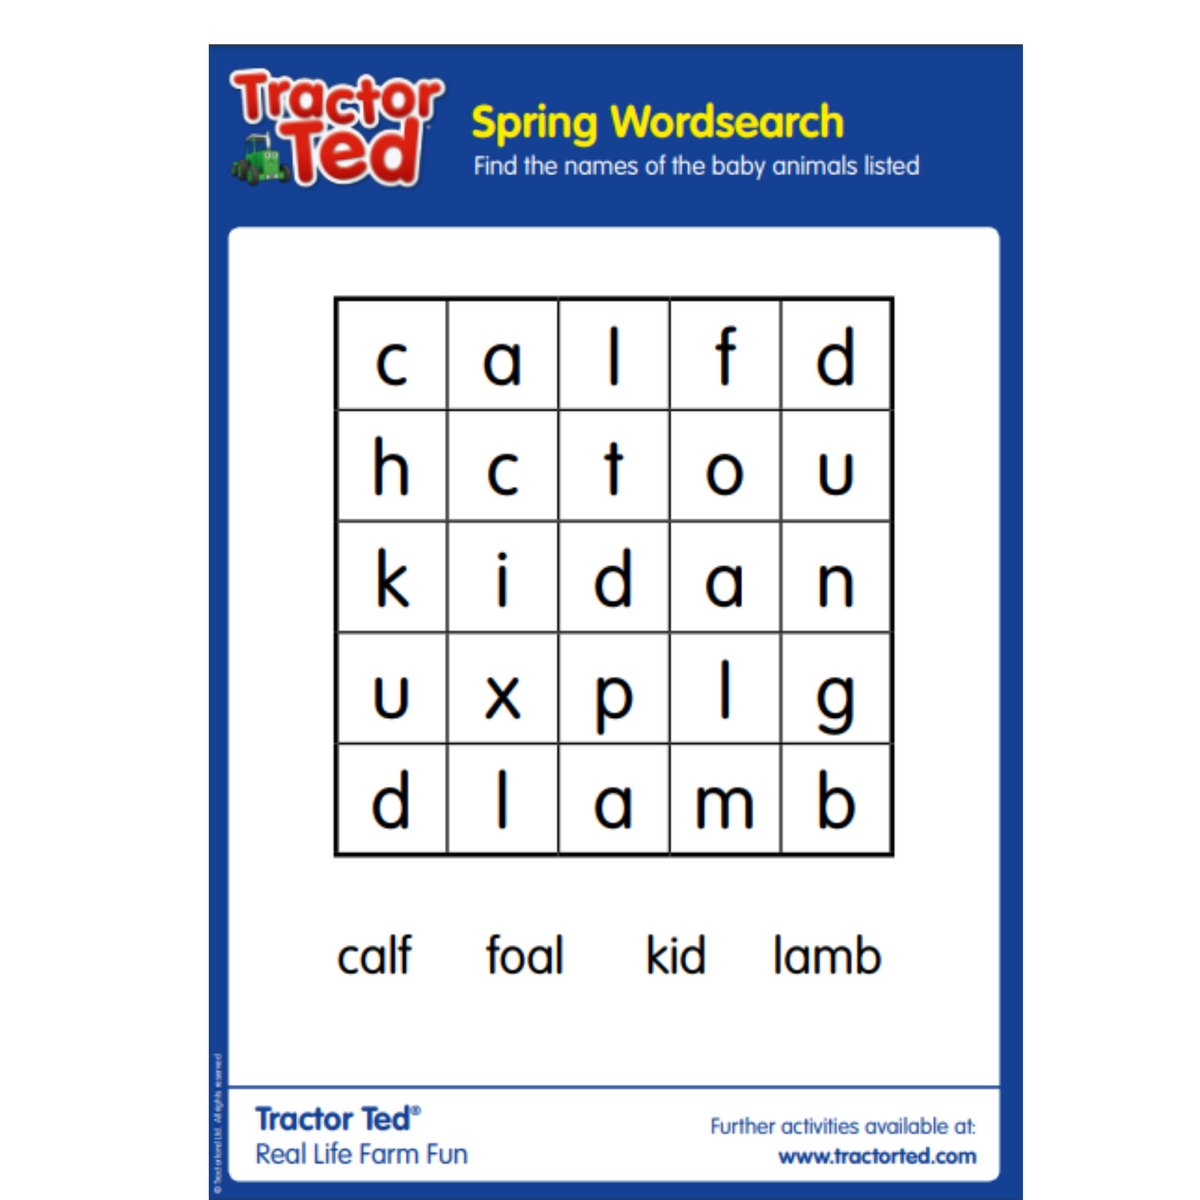 Tractor Ted Spring Wordsearch